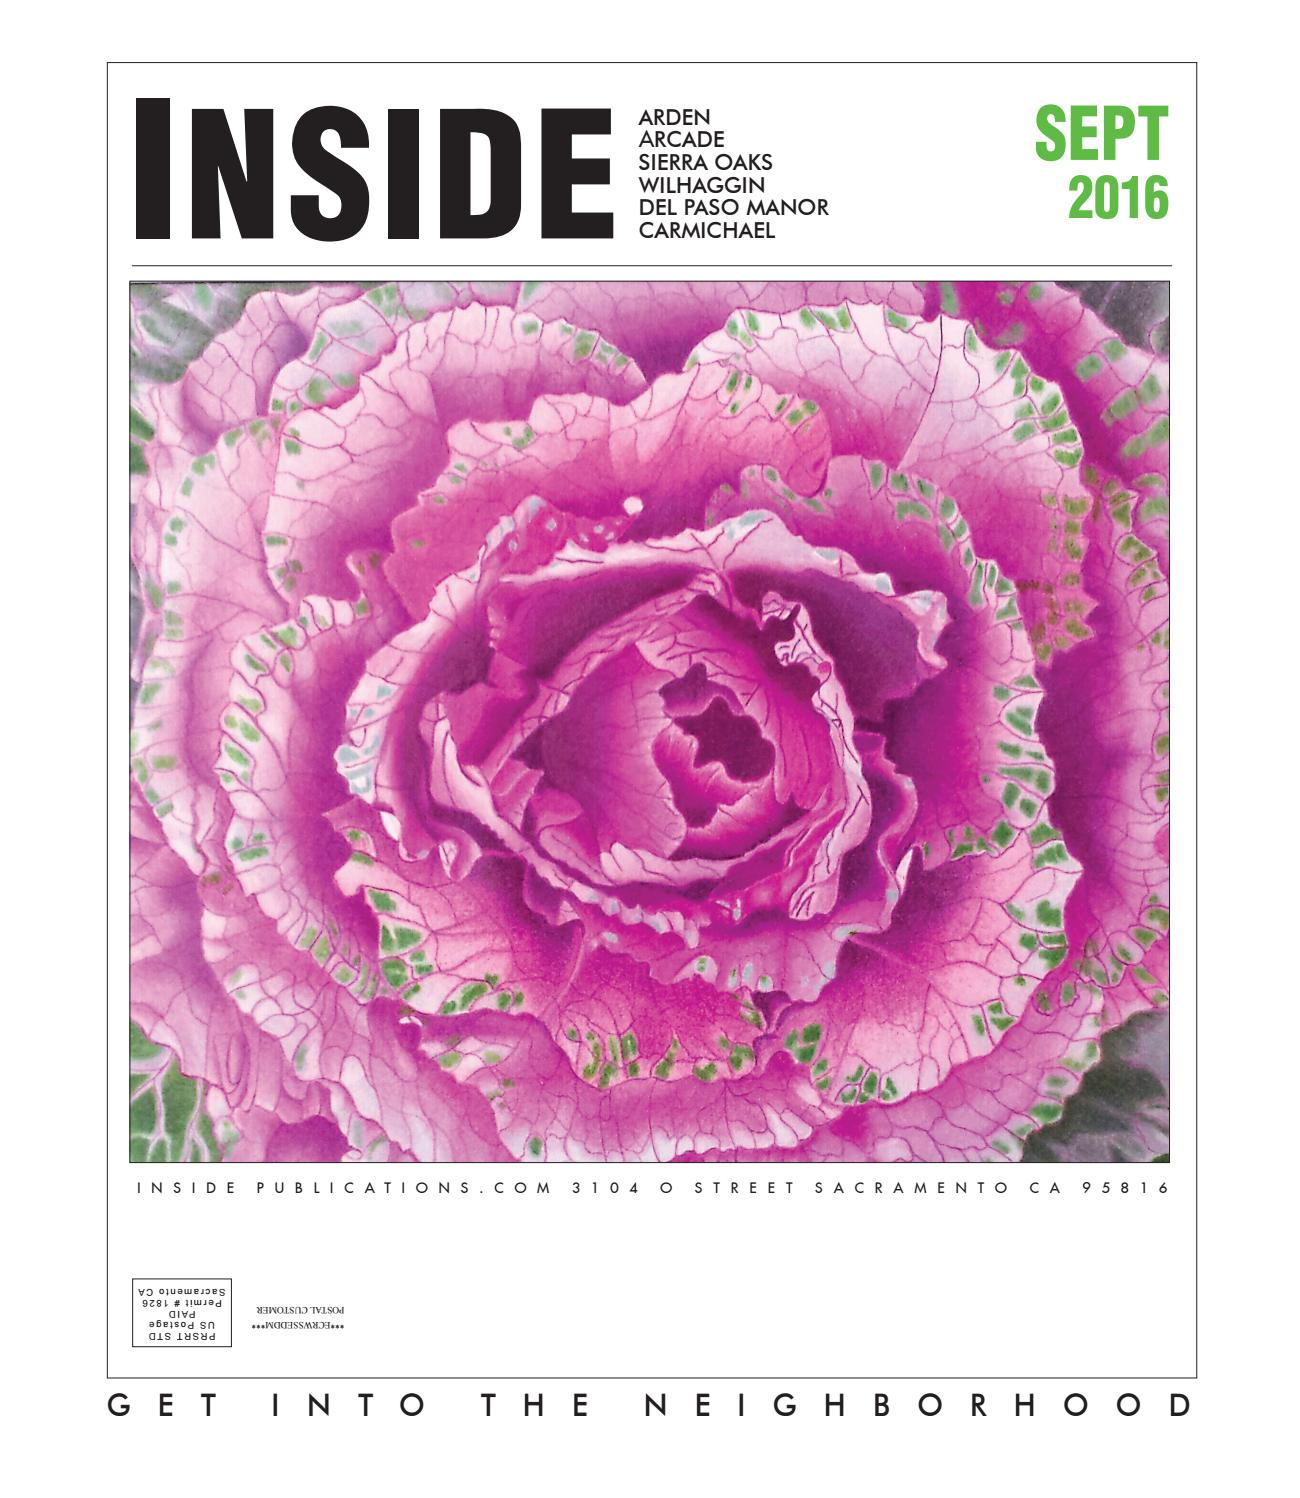 Inside arden sep 2016 by Inside Publications issuu